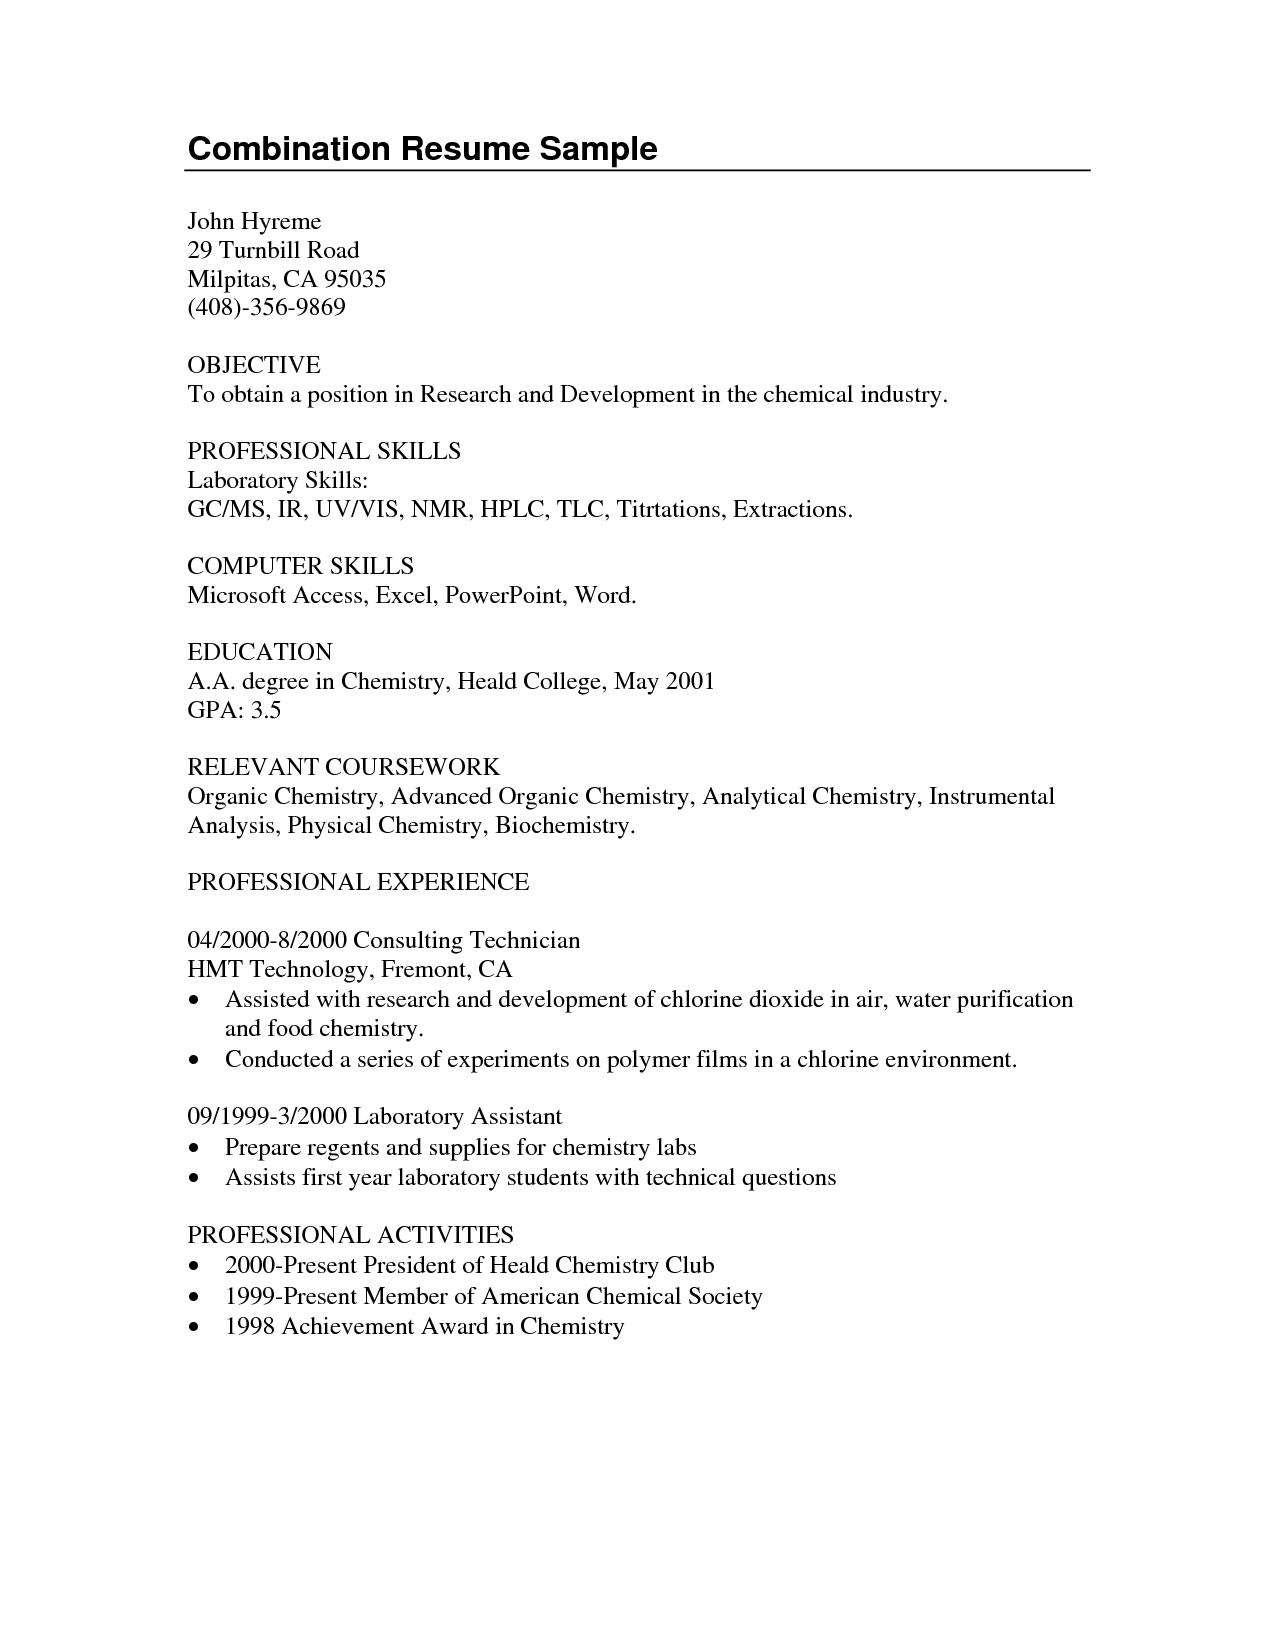 Student Lab Assistant Sample Resume Endearing College Student Resume Best Template Gallery  Httpwww.jobresume .